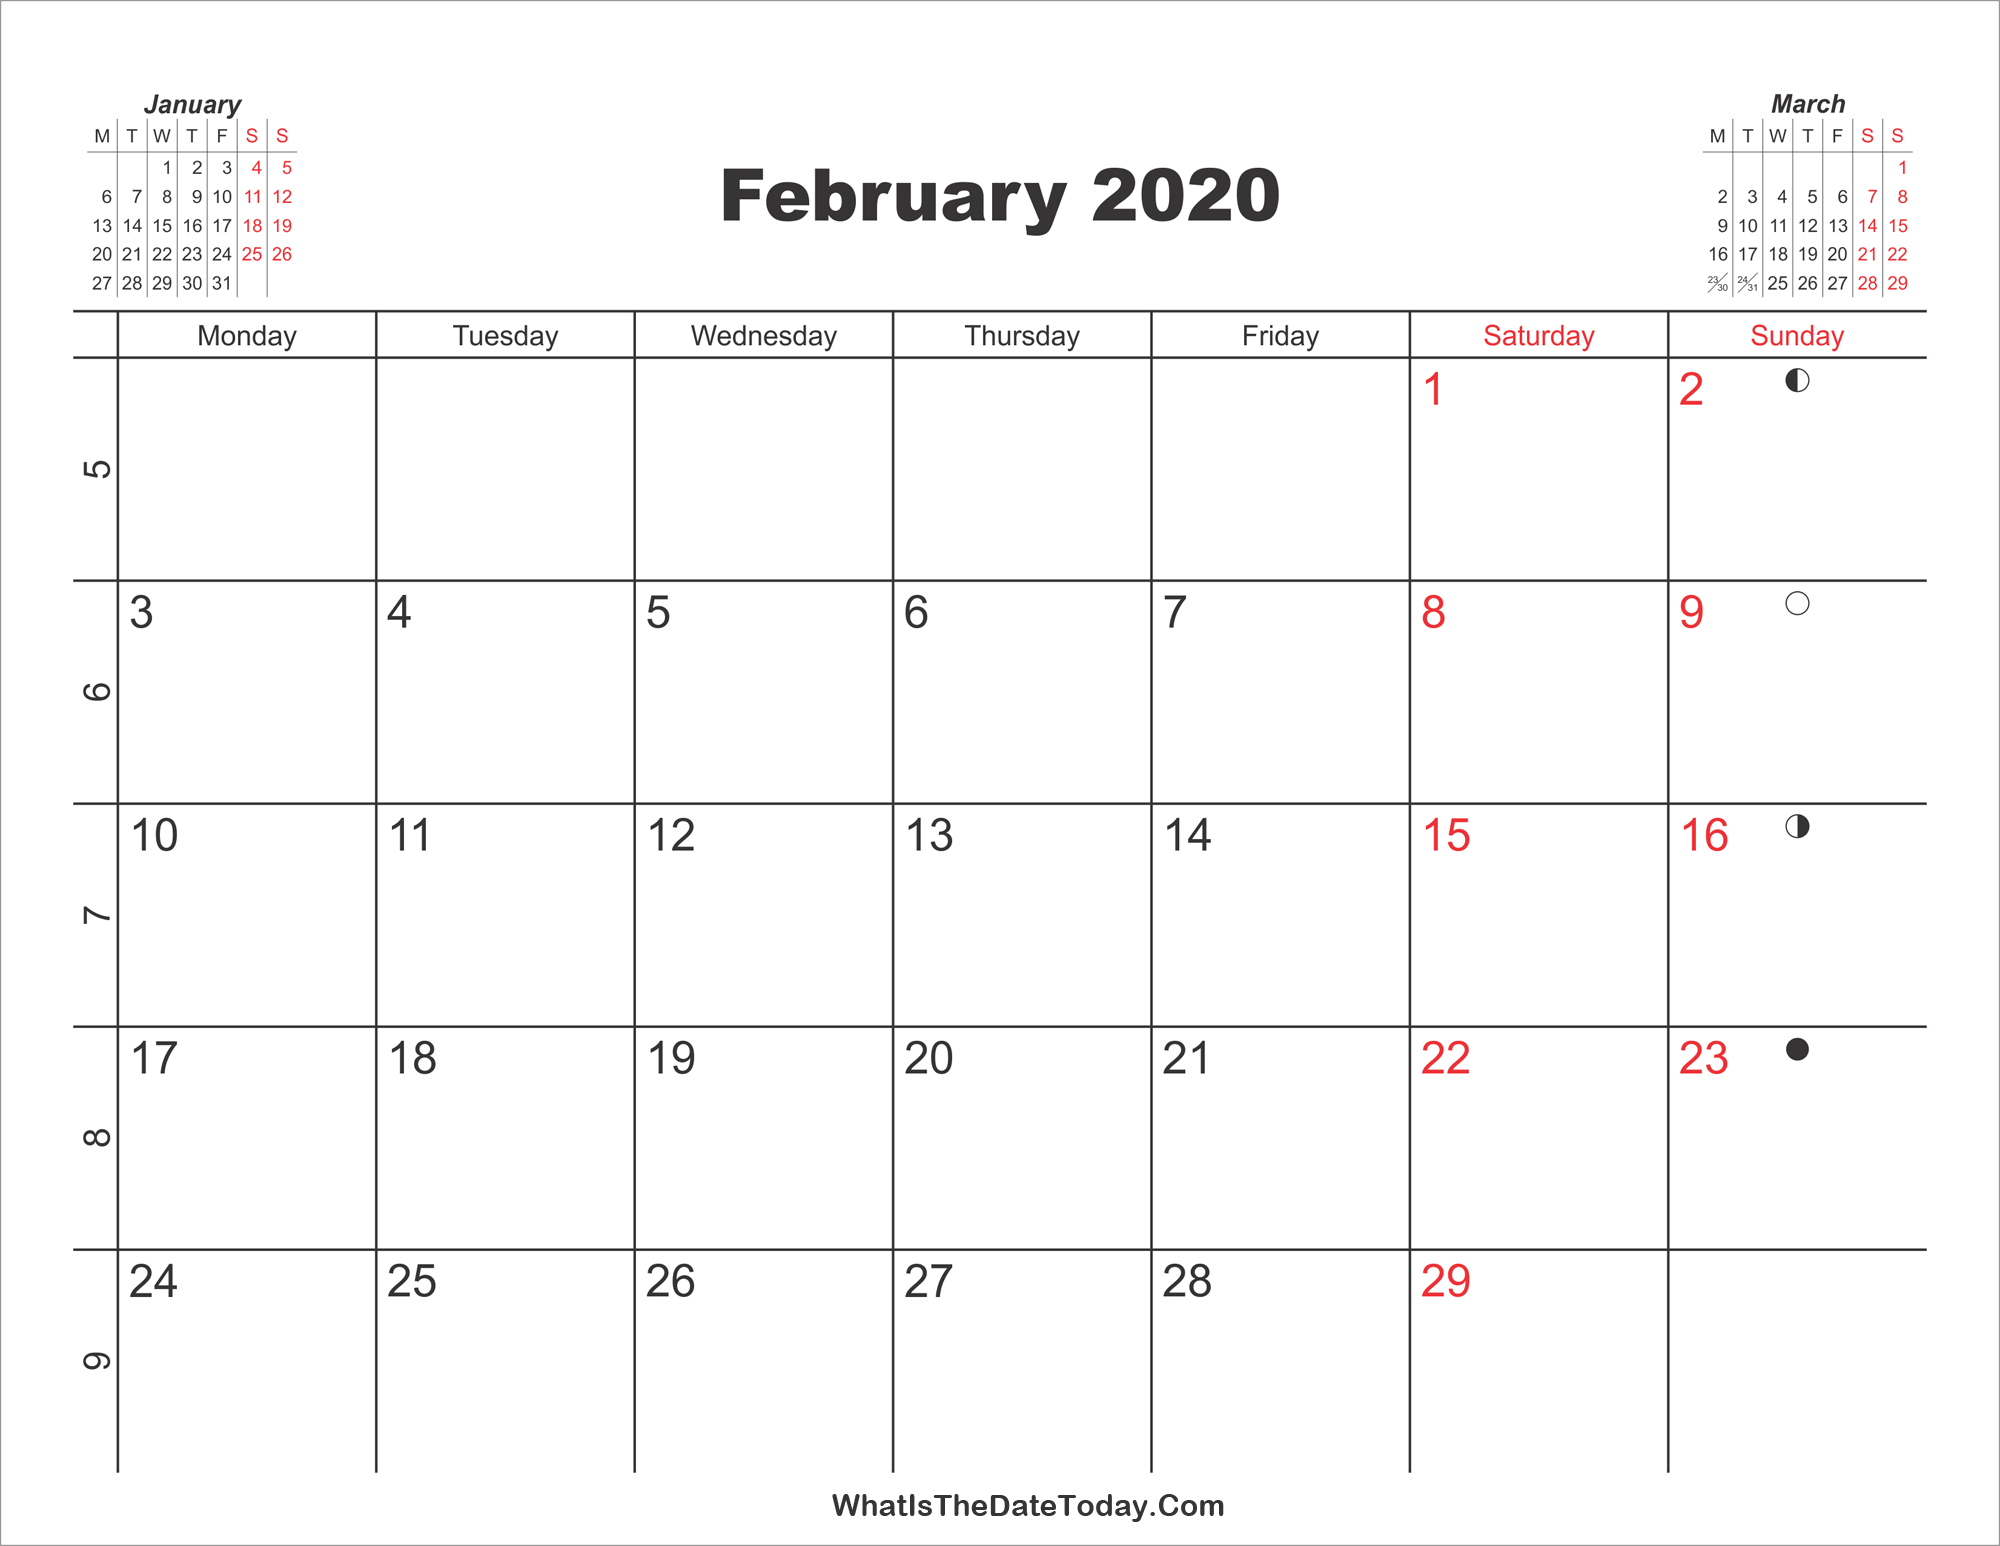 February 2020 Download Calendar Printable Calendar February 2020 | Whatisthedatetoday.Com